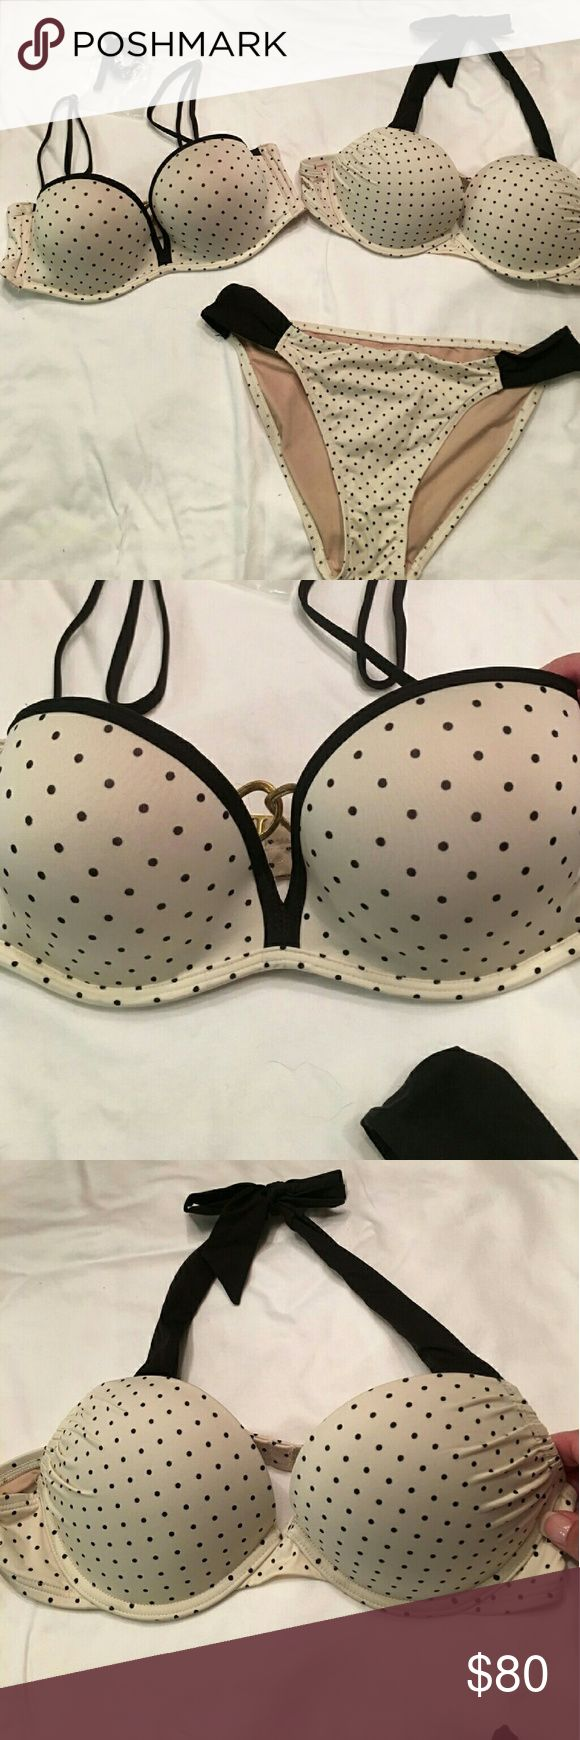 Adorable Polka Dot Bombshell VS Bikini Set SUPER GREAT DEAL!!! Two Victoria Secret Bombshell Push up Bikini Top w/ One Matching Bottom. Tags are cut out, but both tops are 34B and Bottom is a small. Offers Accepted!! Victoria's Secret Swim Bikinis